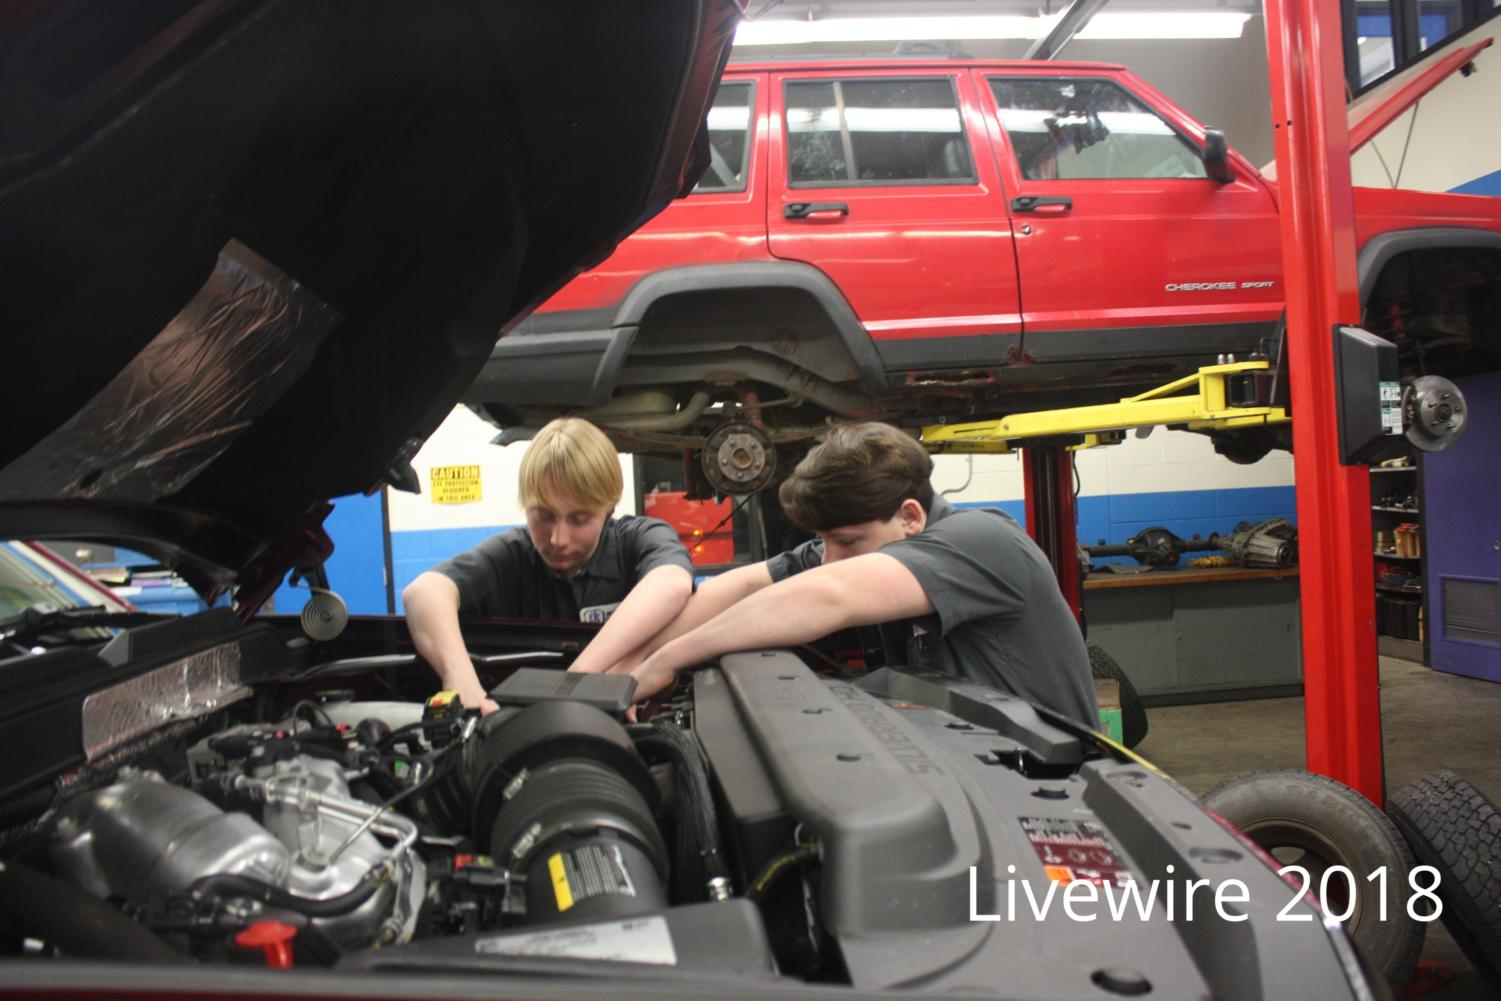 Let's work. Andrew Garman and david Harpster III work on a car in Automotive Diesel class at the CTC on Jan. 11. Both boys worked on their teachers car and learned how to change spark plugs on a truck.